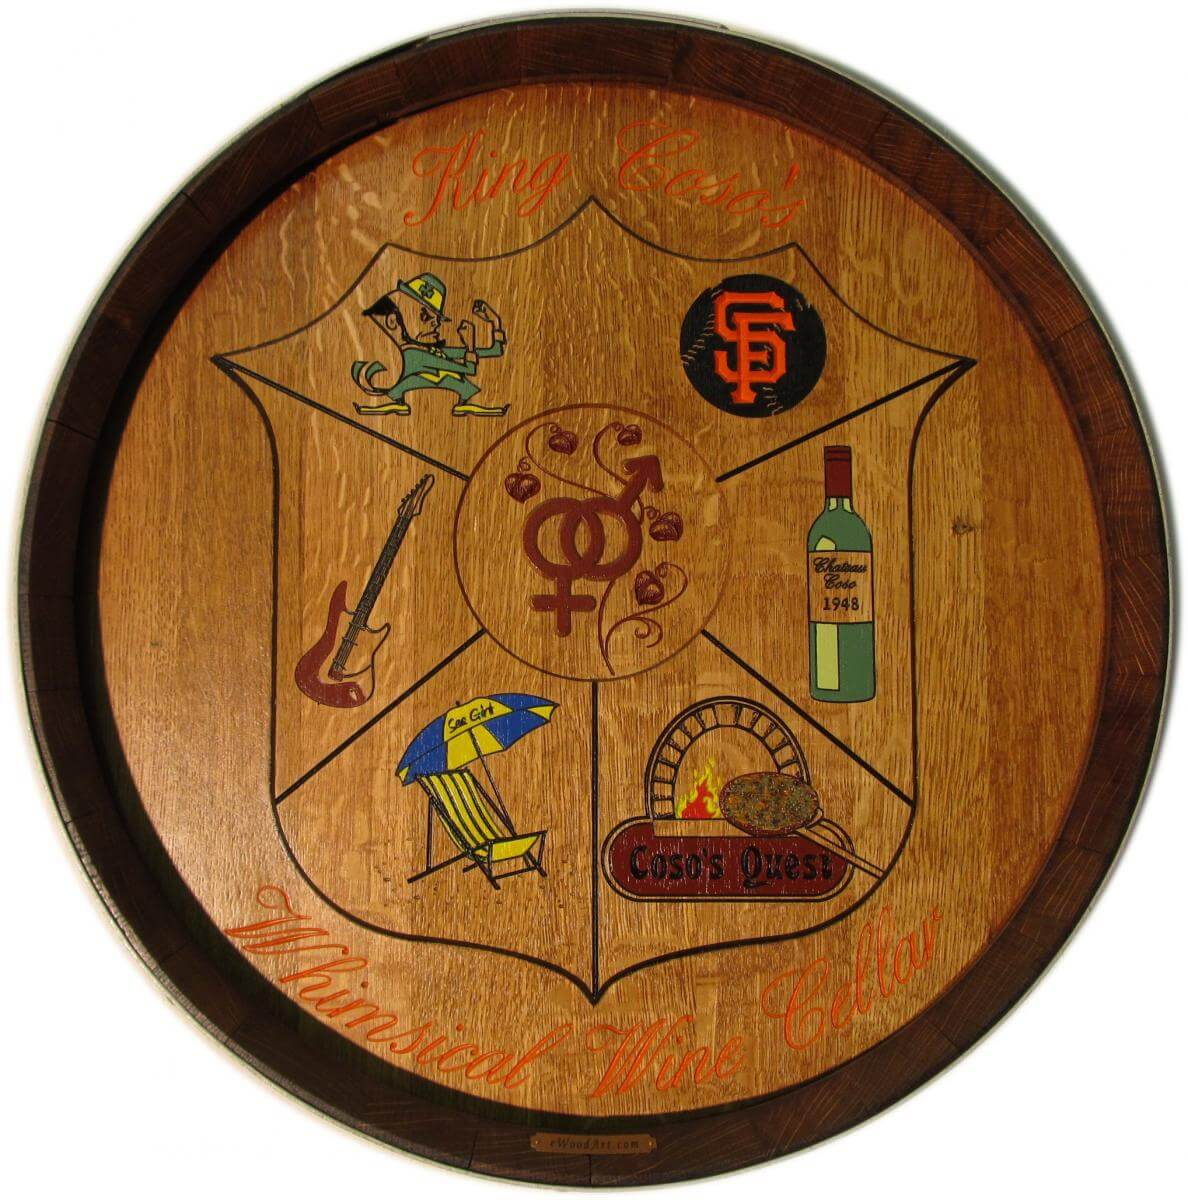 King Coso's Coat Of Arms Barrel Carving